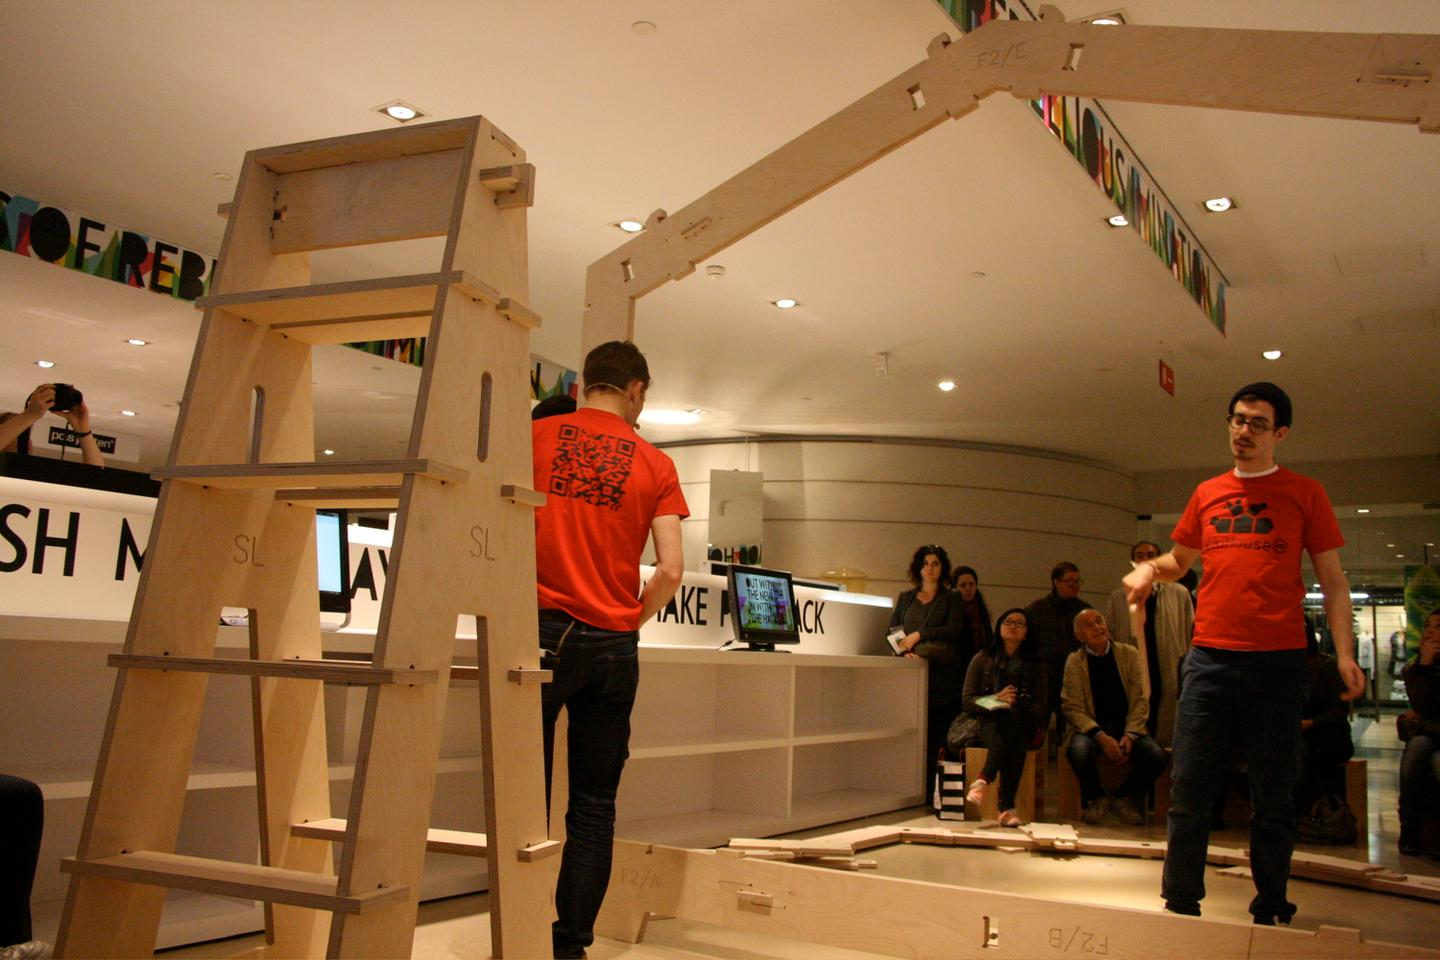 The WikiHouse construction system is based on the use of plywood fins that connect together to form a robust timber frame structure (Photo: Bridget Borgobello/Gizmag)